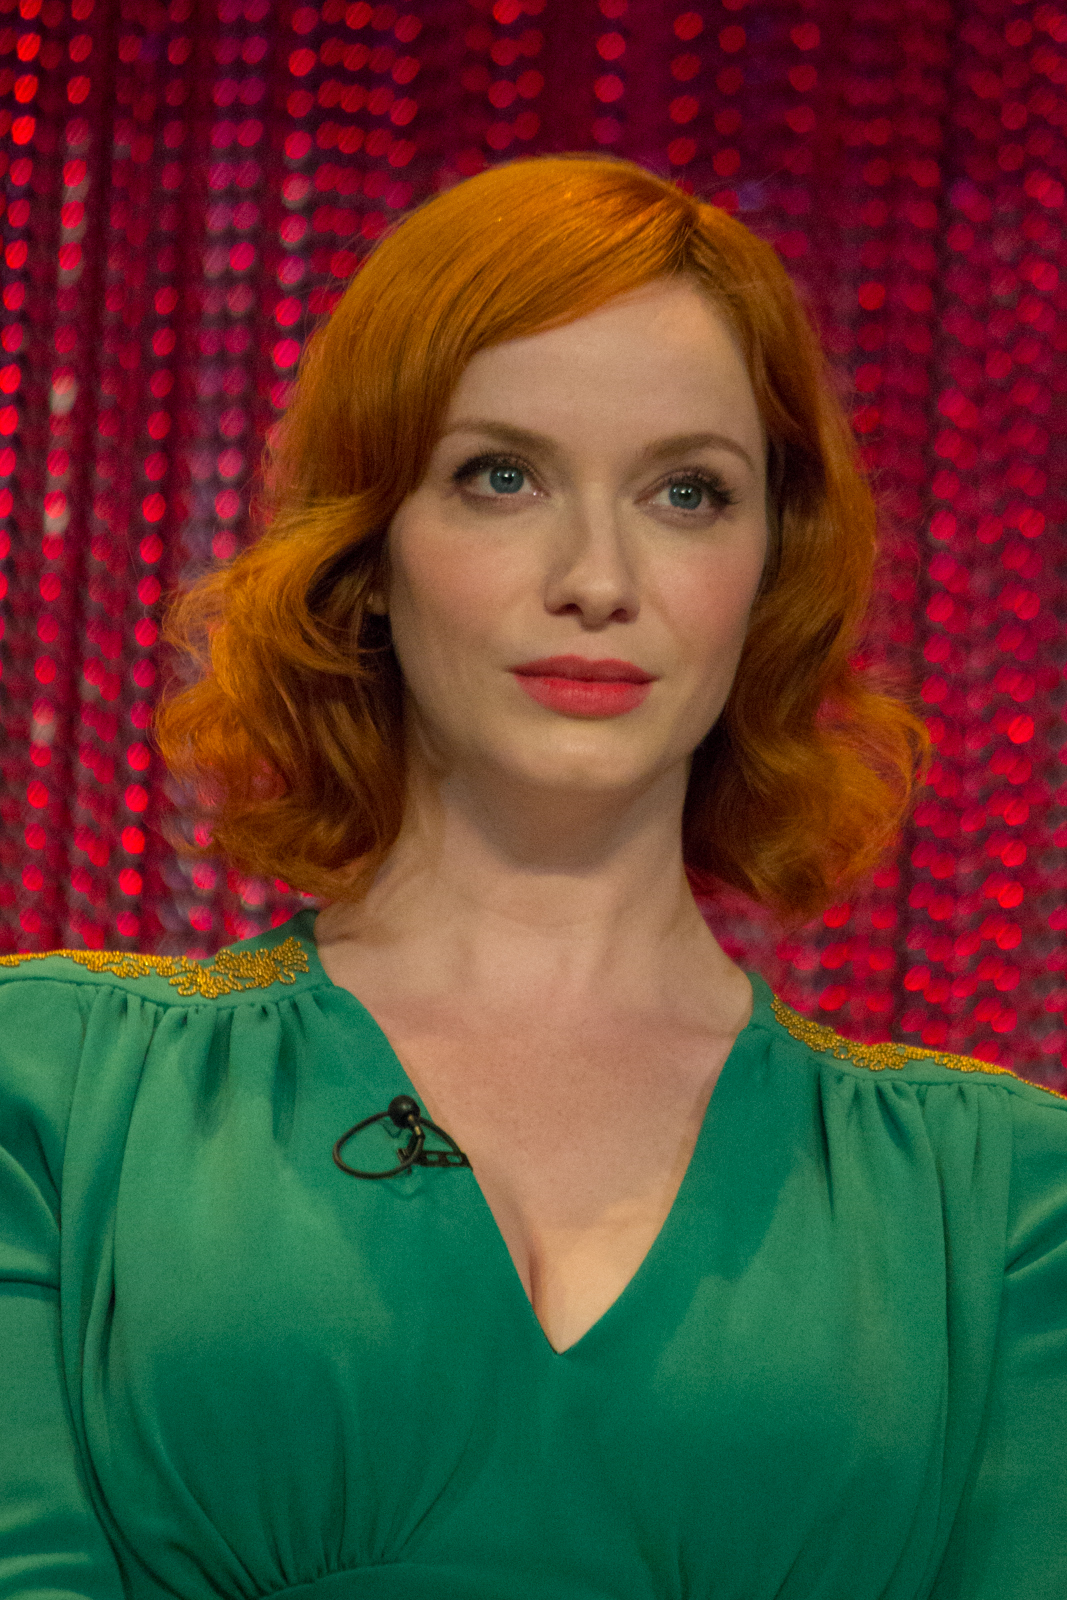 Pictures Of Christina Hendricks Picture 60702 Pictures